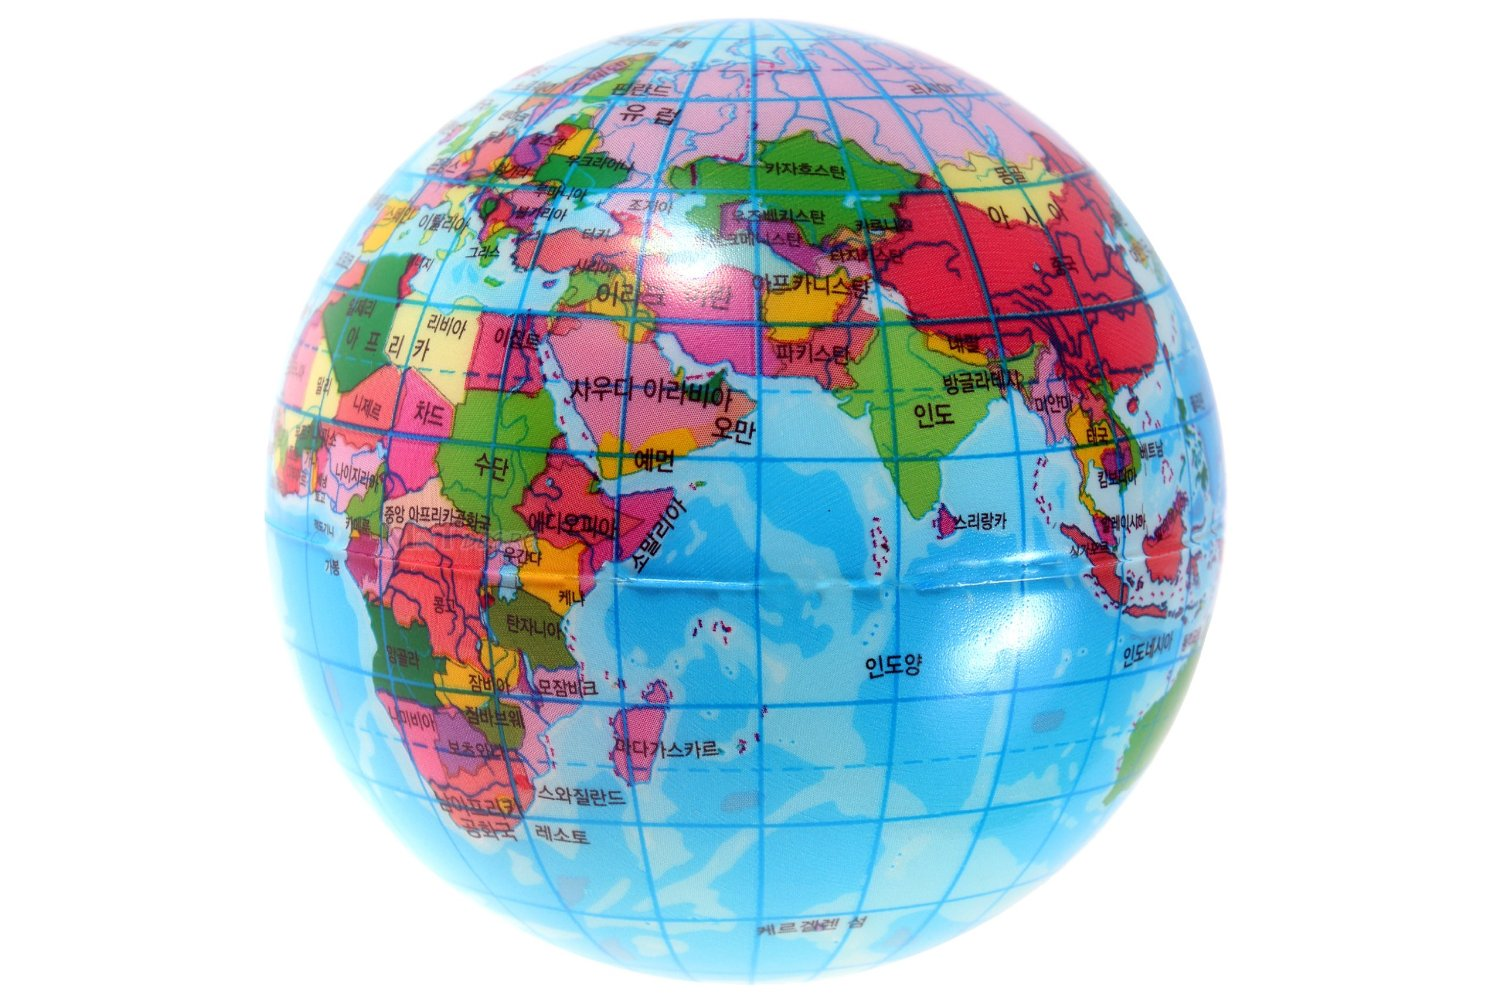 World Map Sponge Ball Bouncy Foam Ball Earth Globe Geography Stress Relief Toy Korean Text Printed Interior Decoration Toy